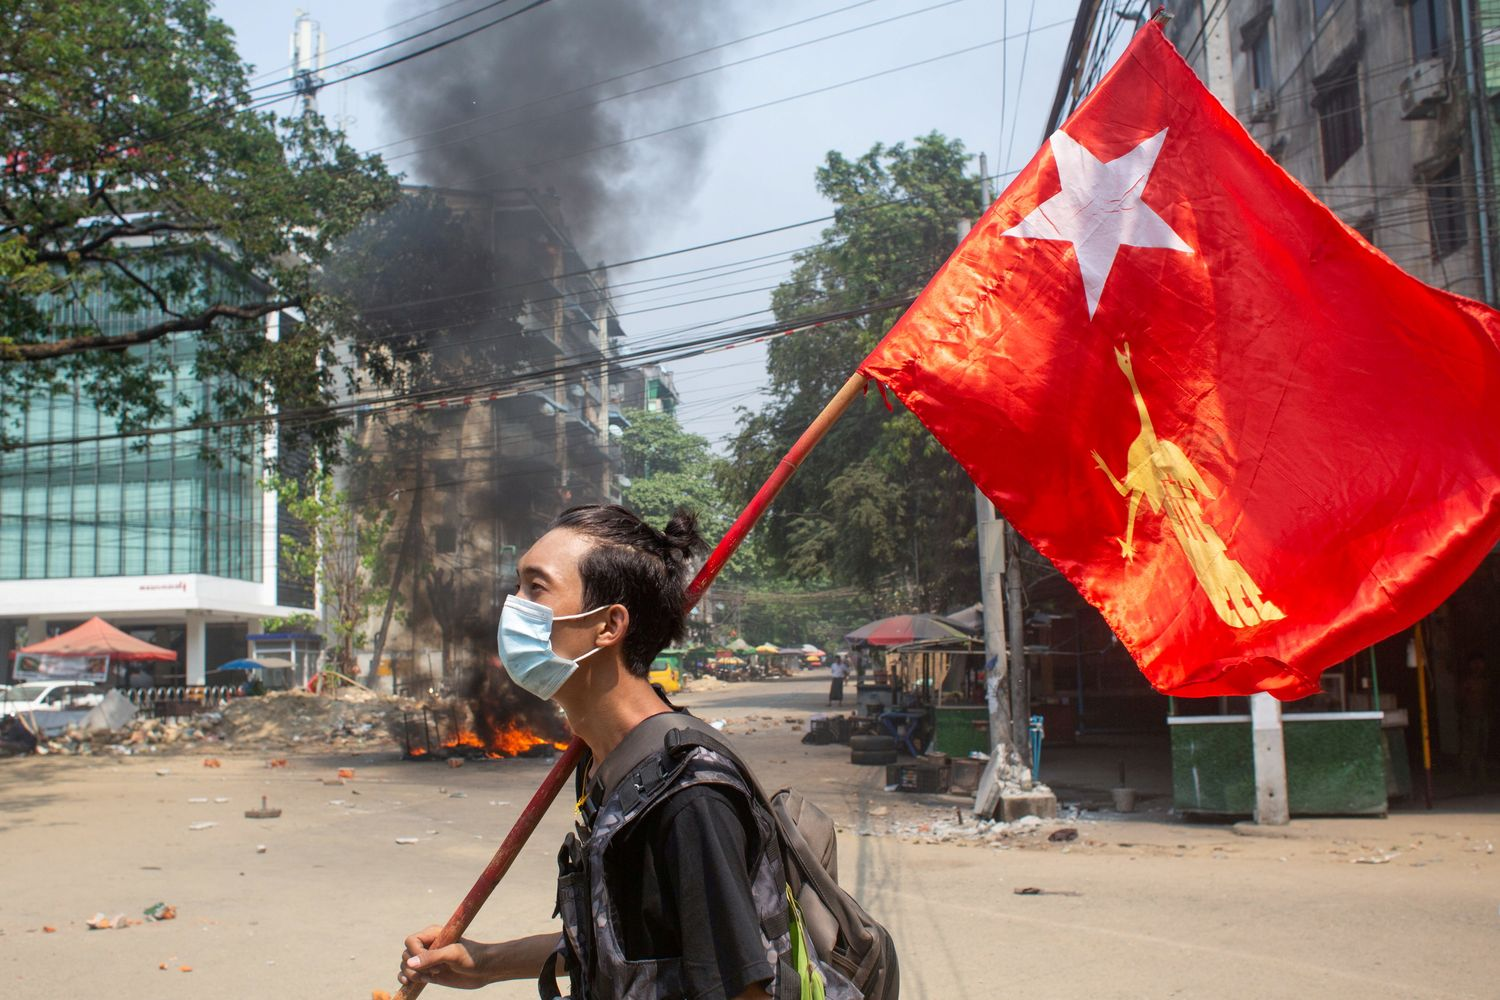 Myanmar news outlet says its journalist jailed for incitement